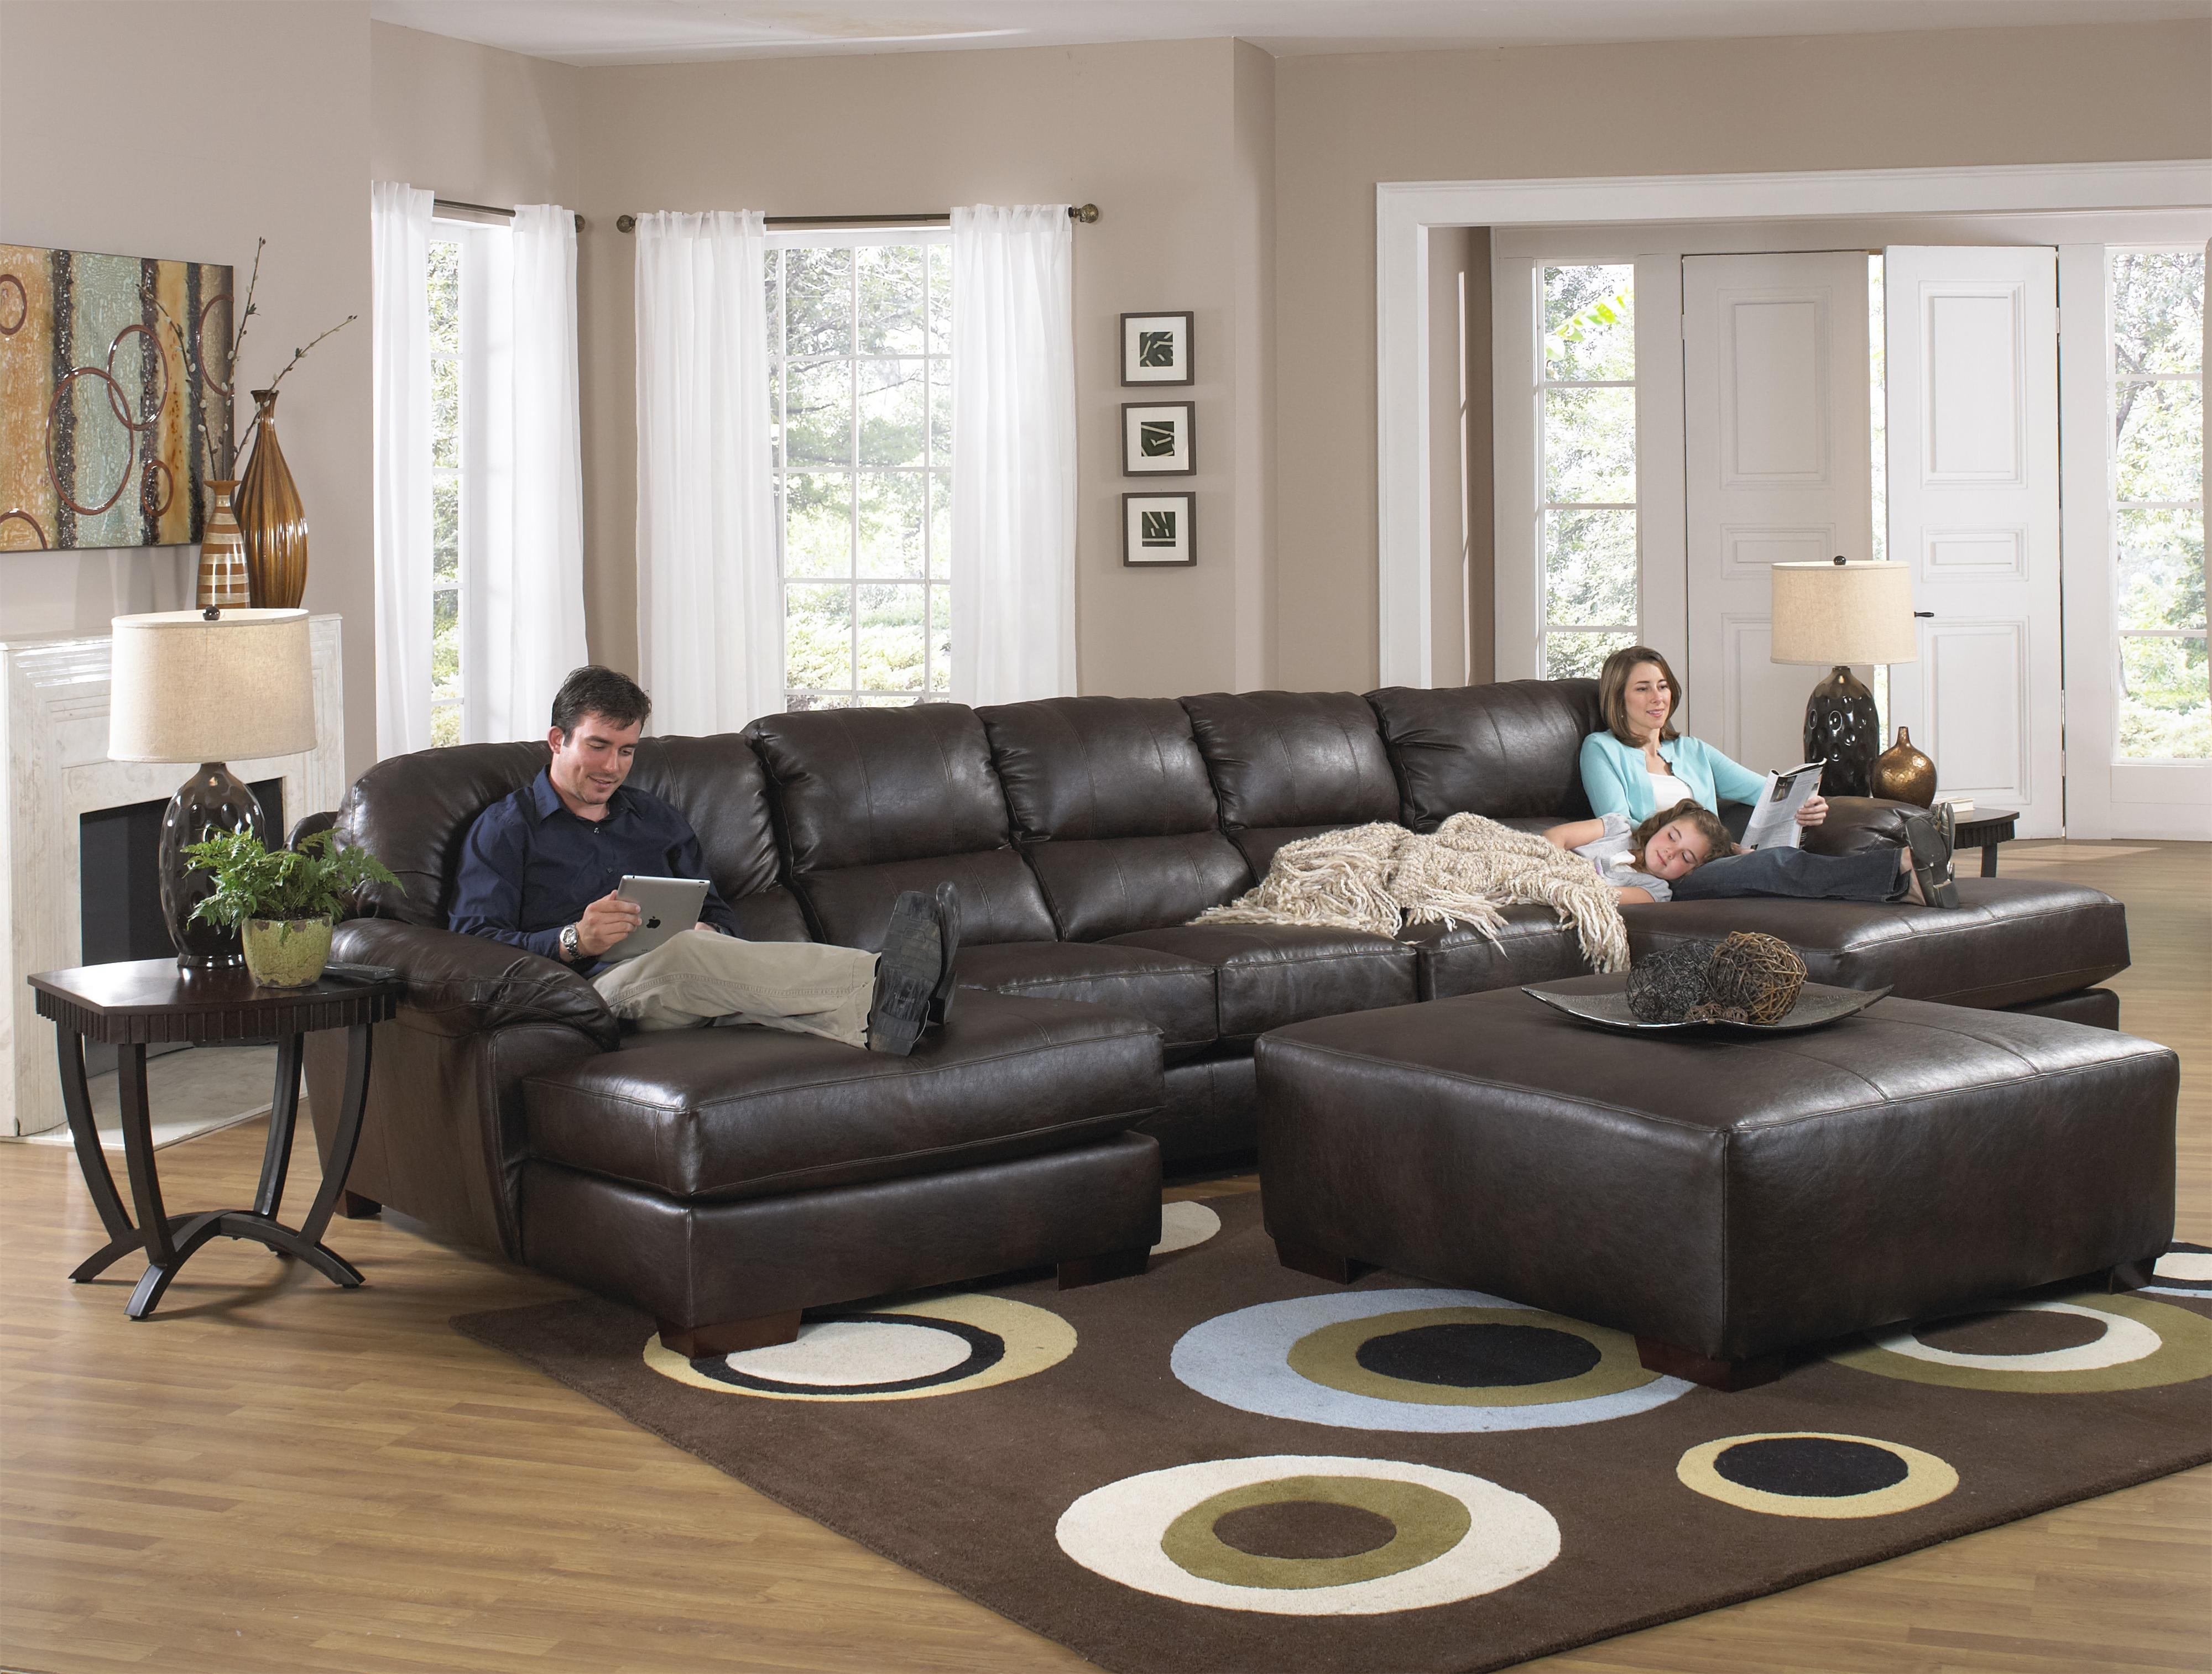 2017 Sectional Sofas With Chaise And Ottoman Within Sofa : Beautiful Large Sectional Sofa With Chaise L Shaped Cream (View 5 of 15)